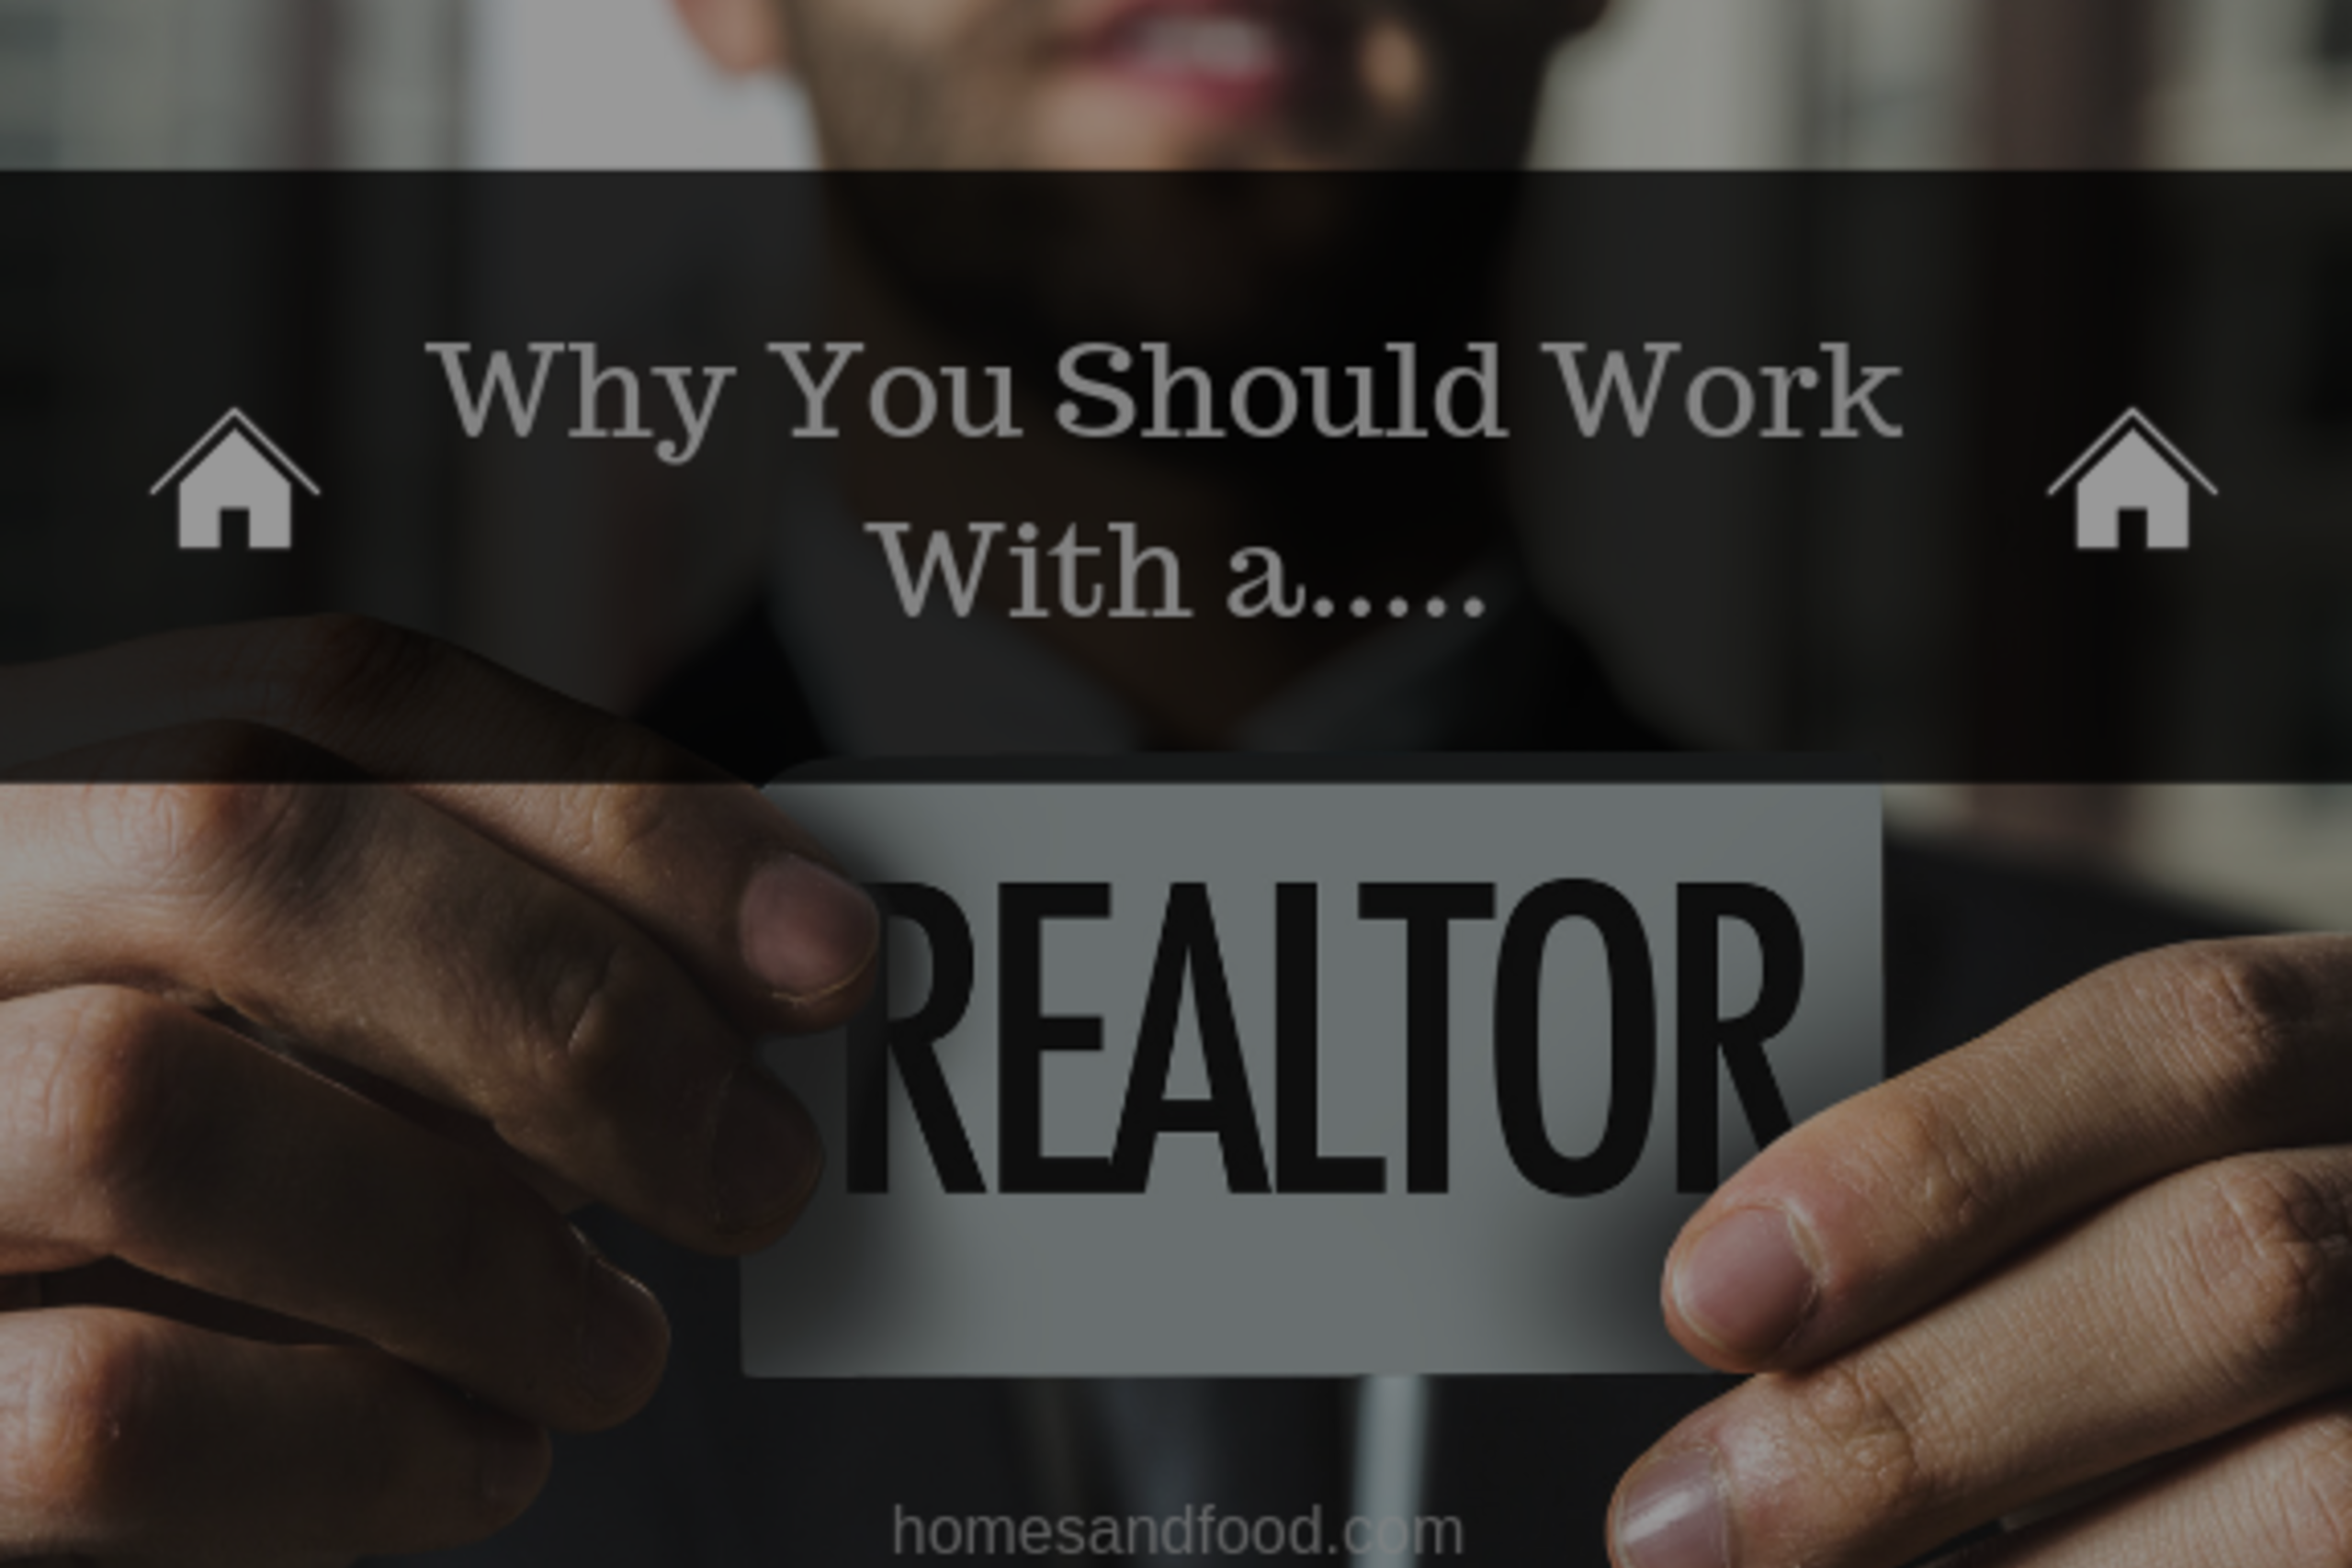 Why You Should Work With a Realtor